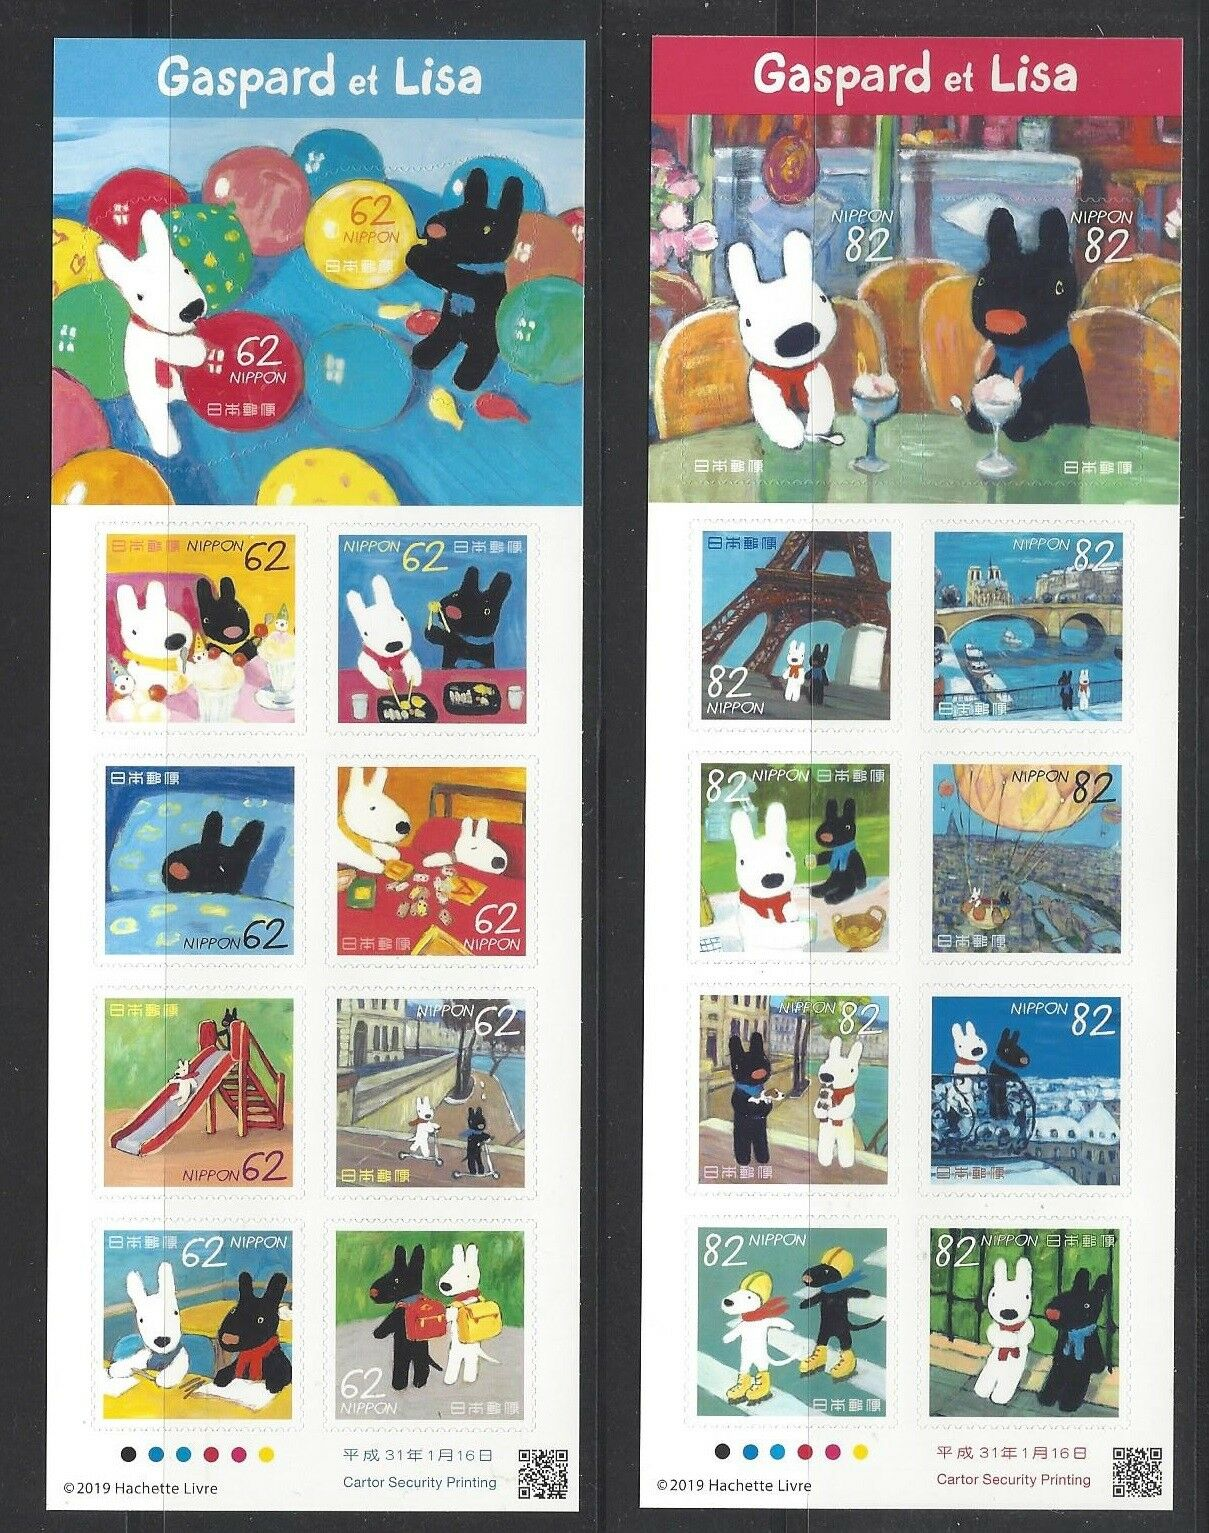 Japan - 20th Anniversary of Gaspard and Lisa Animated Series (January 16, 2019) 2 booklets of 8